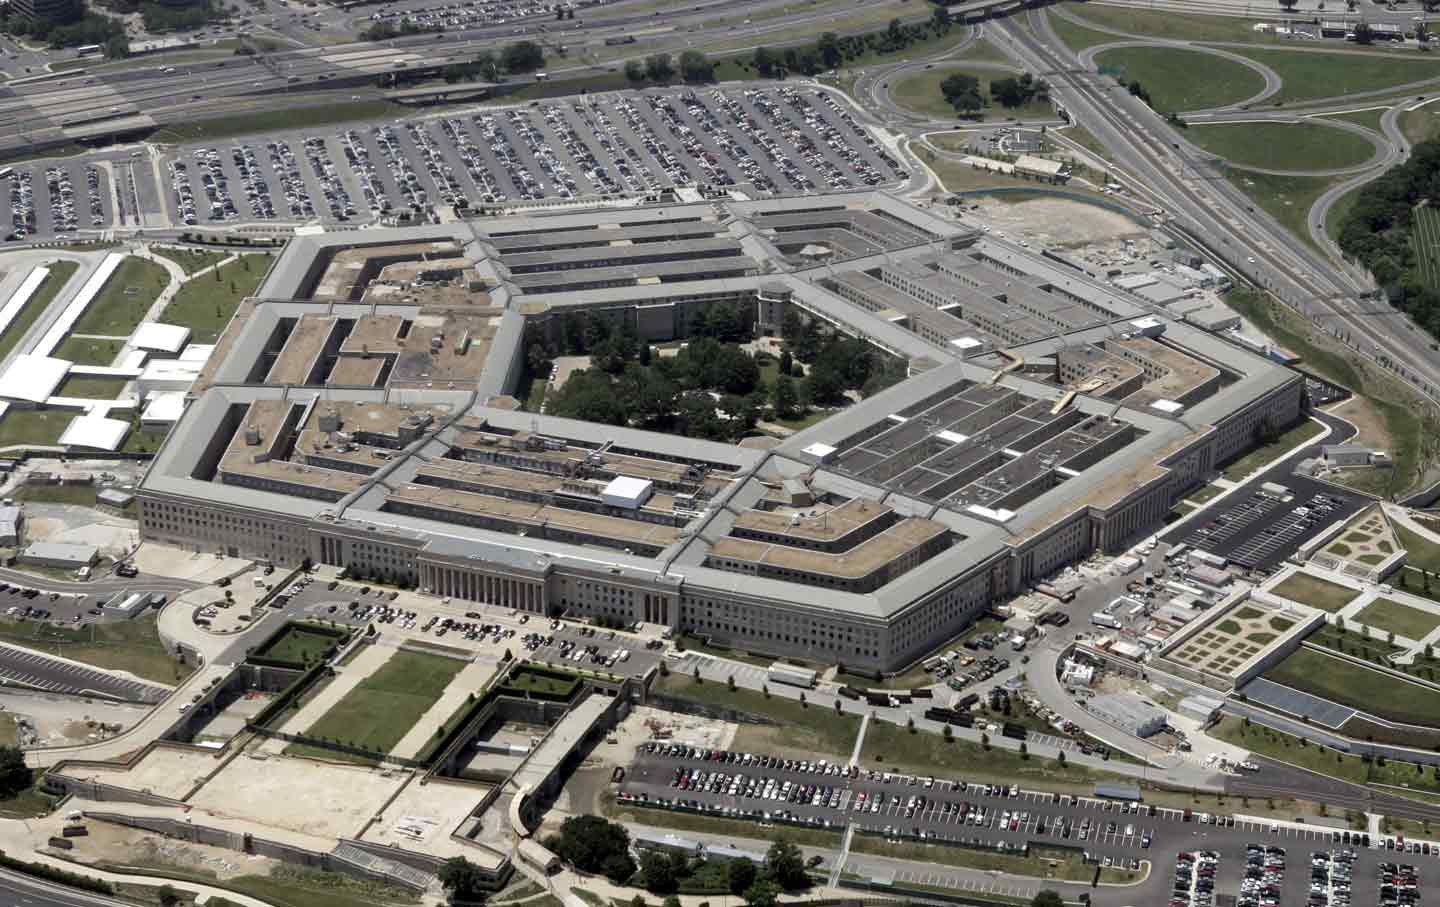 Power at the Pentagon: Civilian-Military Relations and Representation